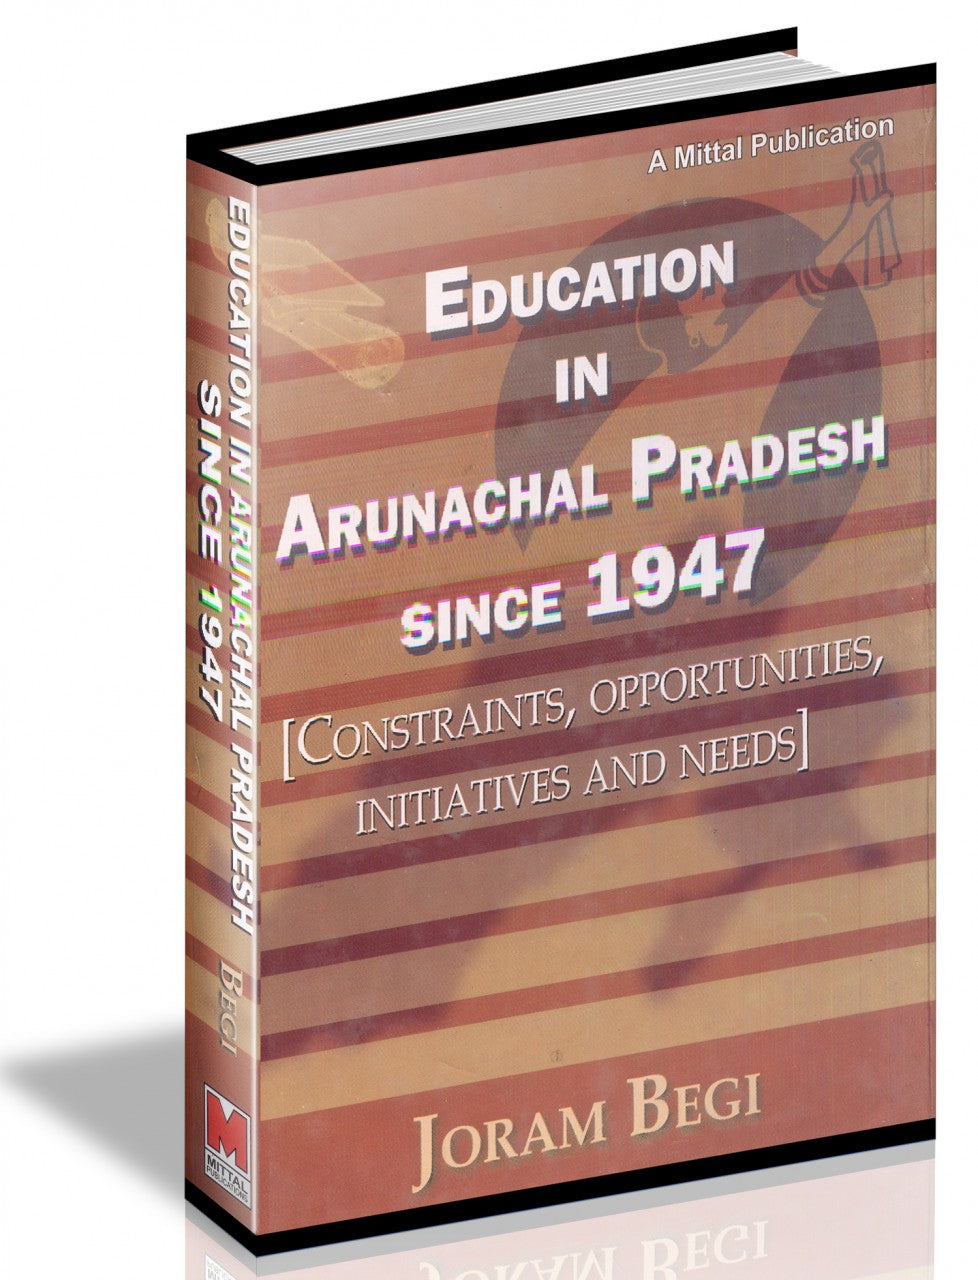 Education in Arunachal Pradesh Since 1947